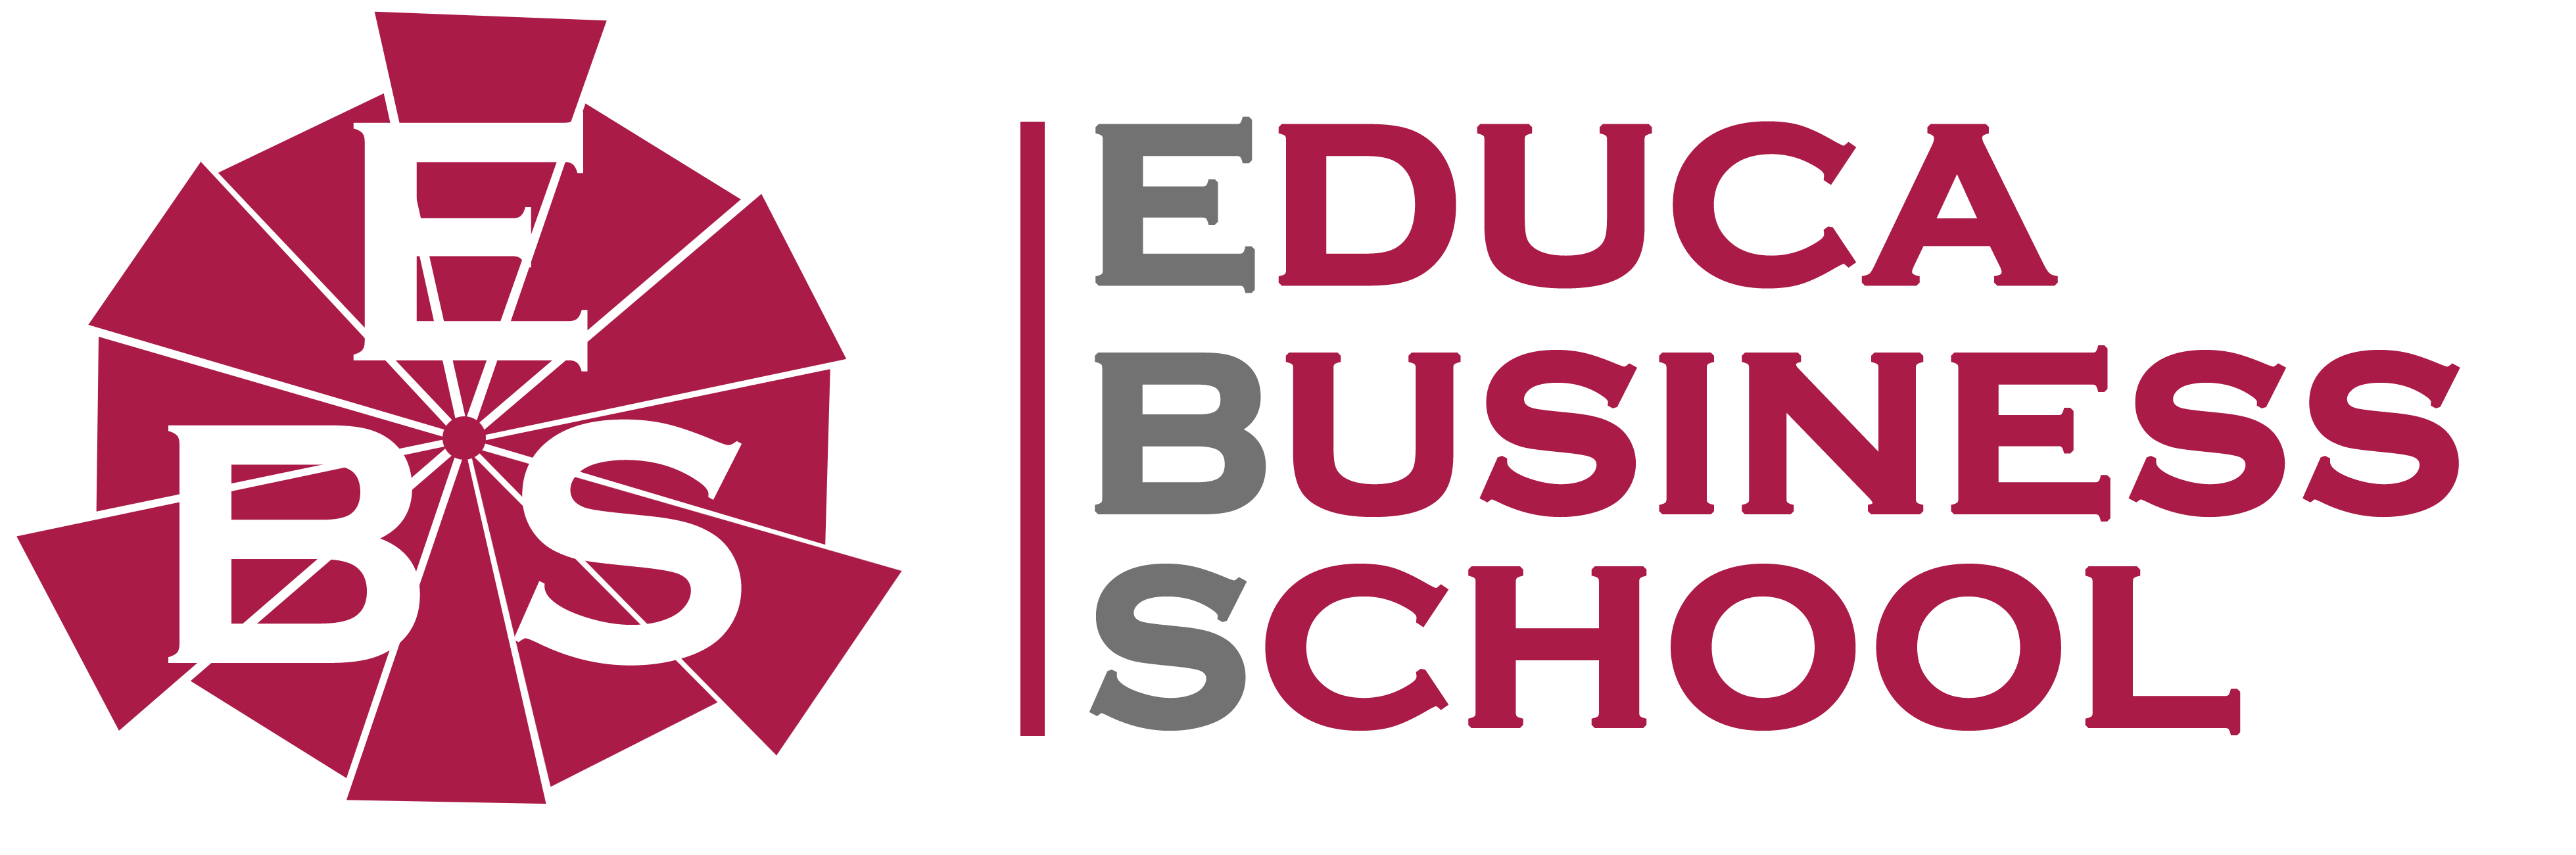 EDUCA Business School tu escuela de negocios online